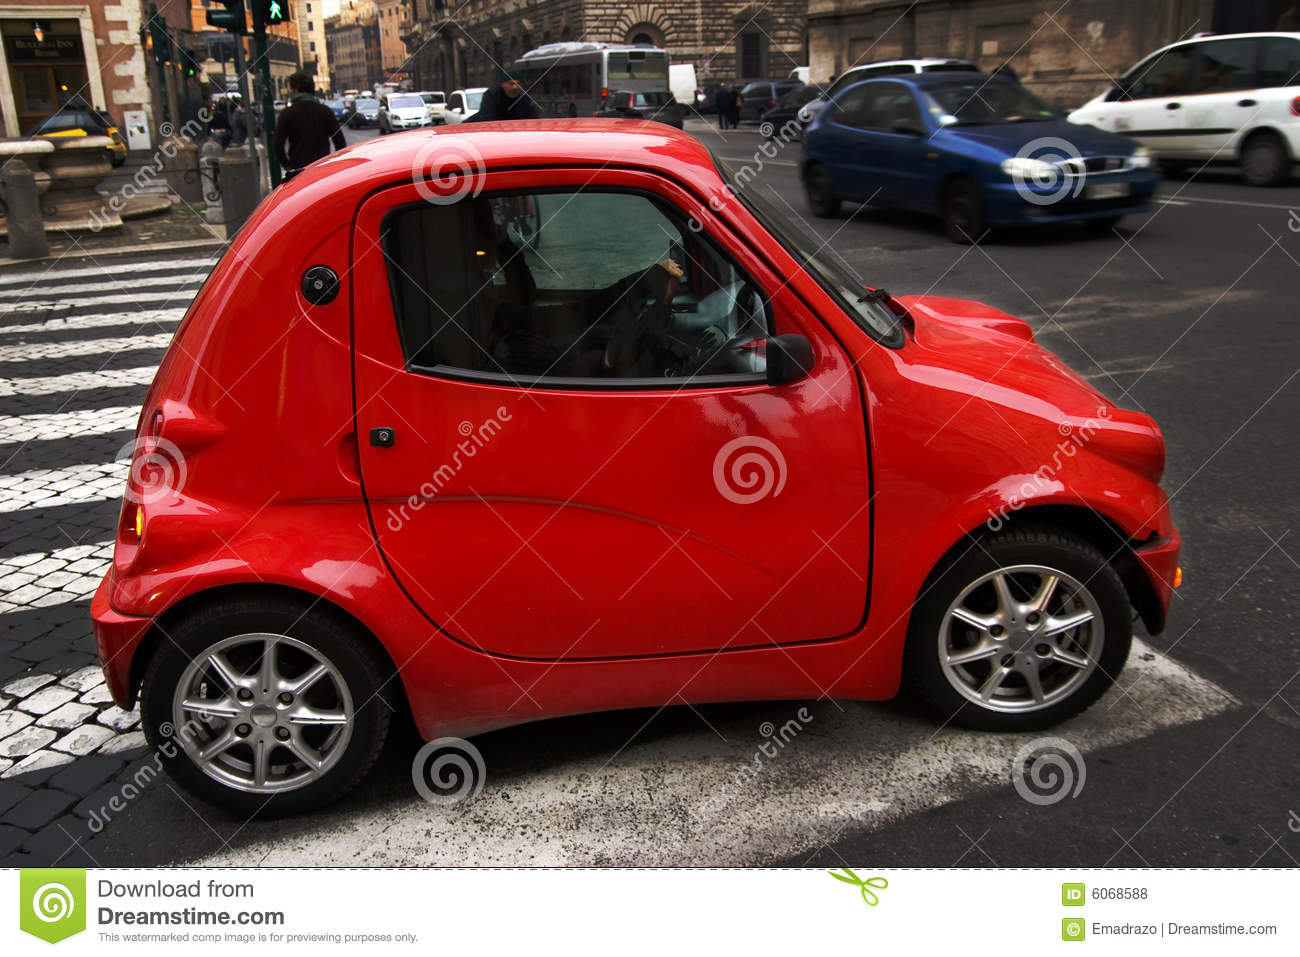 Street Dreams Auto >> Little red car stock photo. Image of automobile, friendly - 6068588